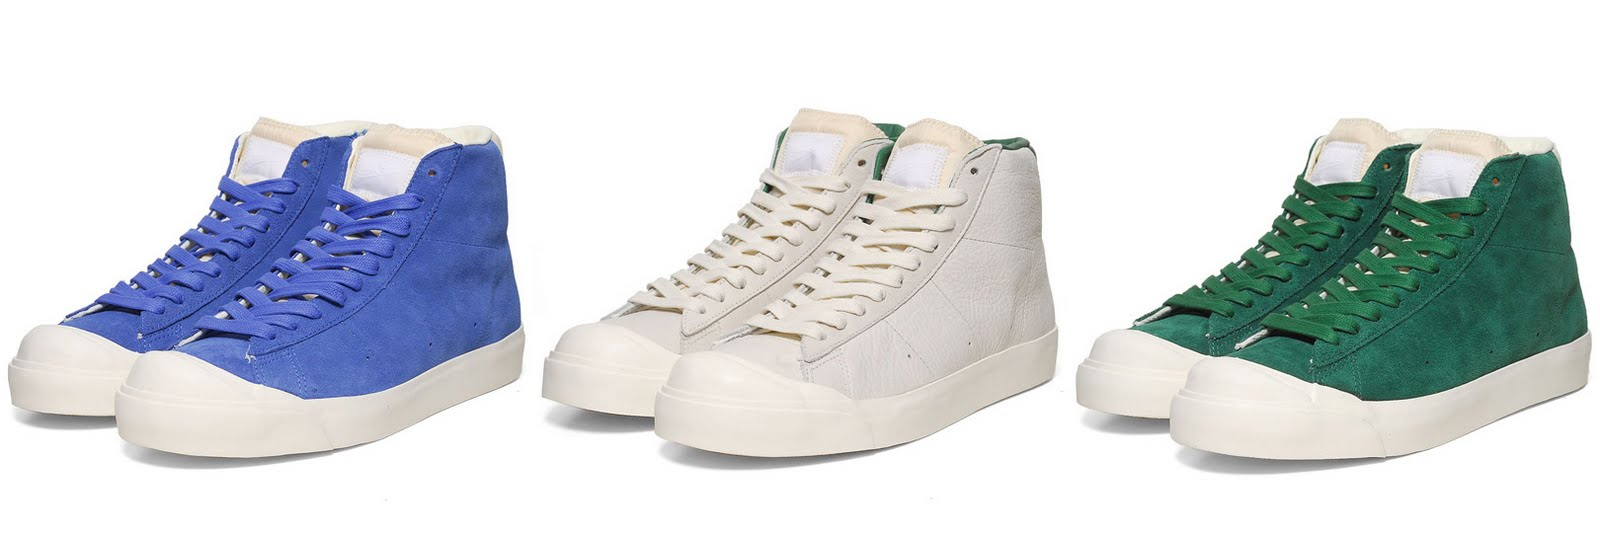 online store 8aece 56b22 Yep, Nike once again comes up with the Nike Blazer AB. After recently came  with the Blazer AB TZ x Sophnet ...